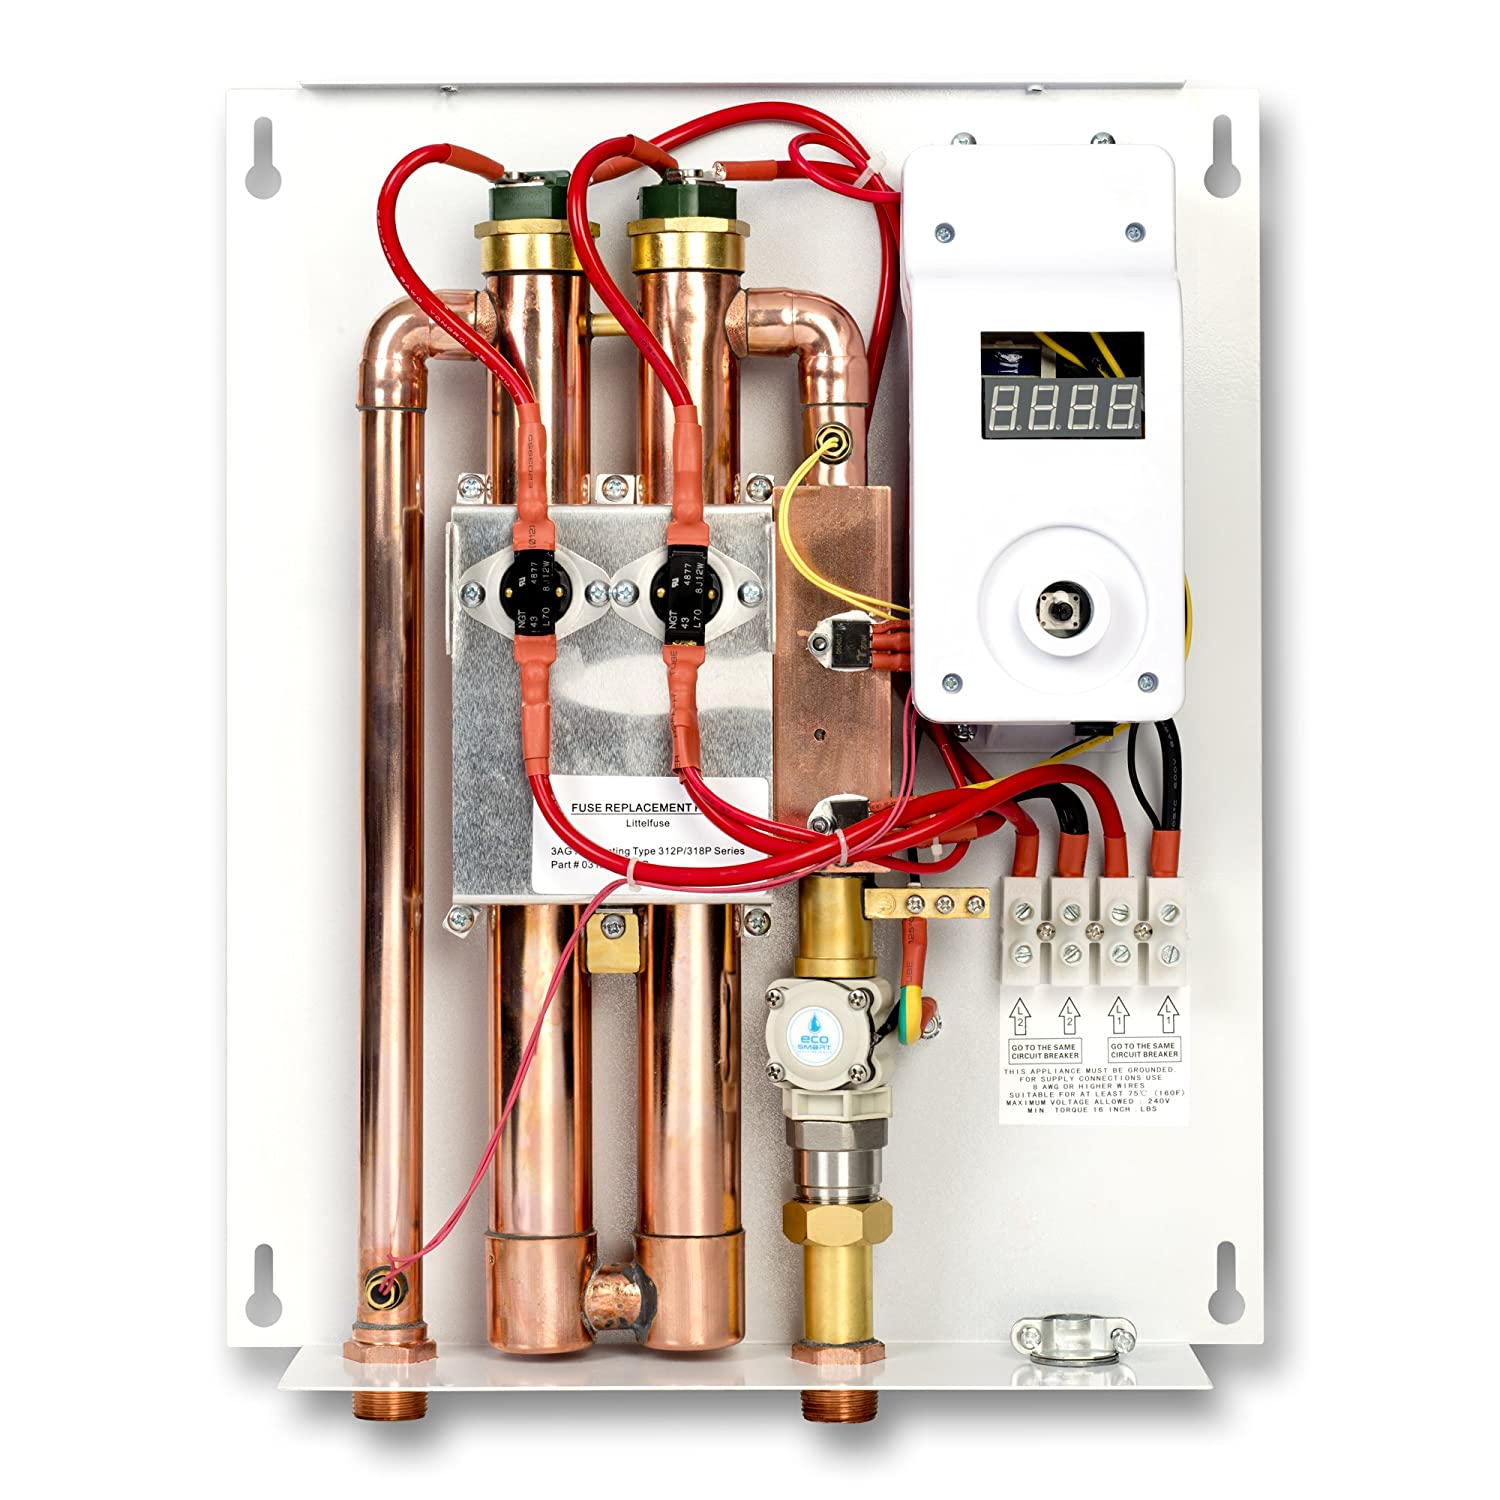 81Tny3DEHPL._SL1500_ ecosmart eco 18 electric tankless water heater, 18 kw at 240 volts rheem rte 18 wiring diagram at eliteediting.co